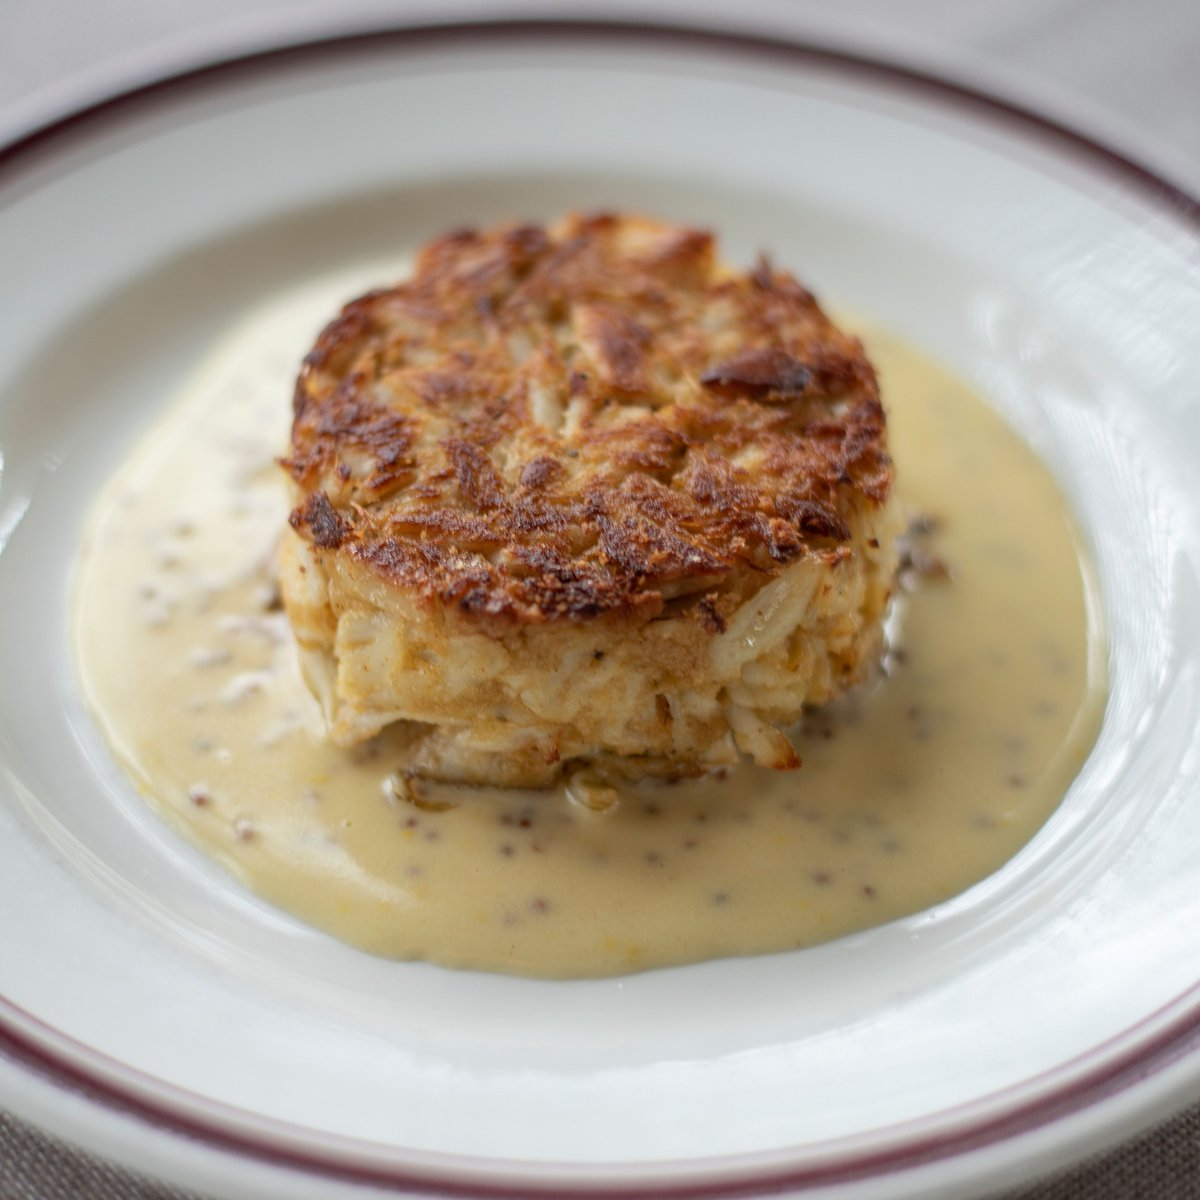 One of our best selling items because we believe in no fillers and all jumbo lump crab meat! 🦀  . . . #crabcakes #nofiller #fresh #lumpcrab #delicious #floridafoodie  #bestofflorida #delish #nomnom #finedineflorida #bocabites https://t.co/tOg7xLrqBE